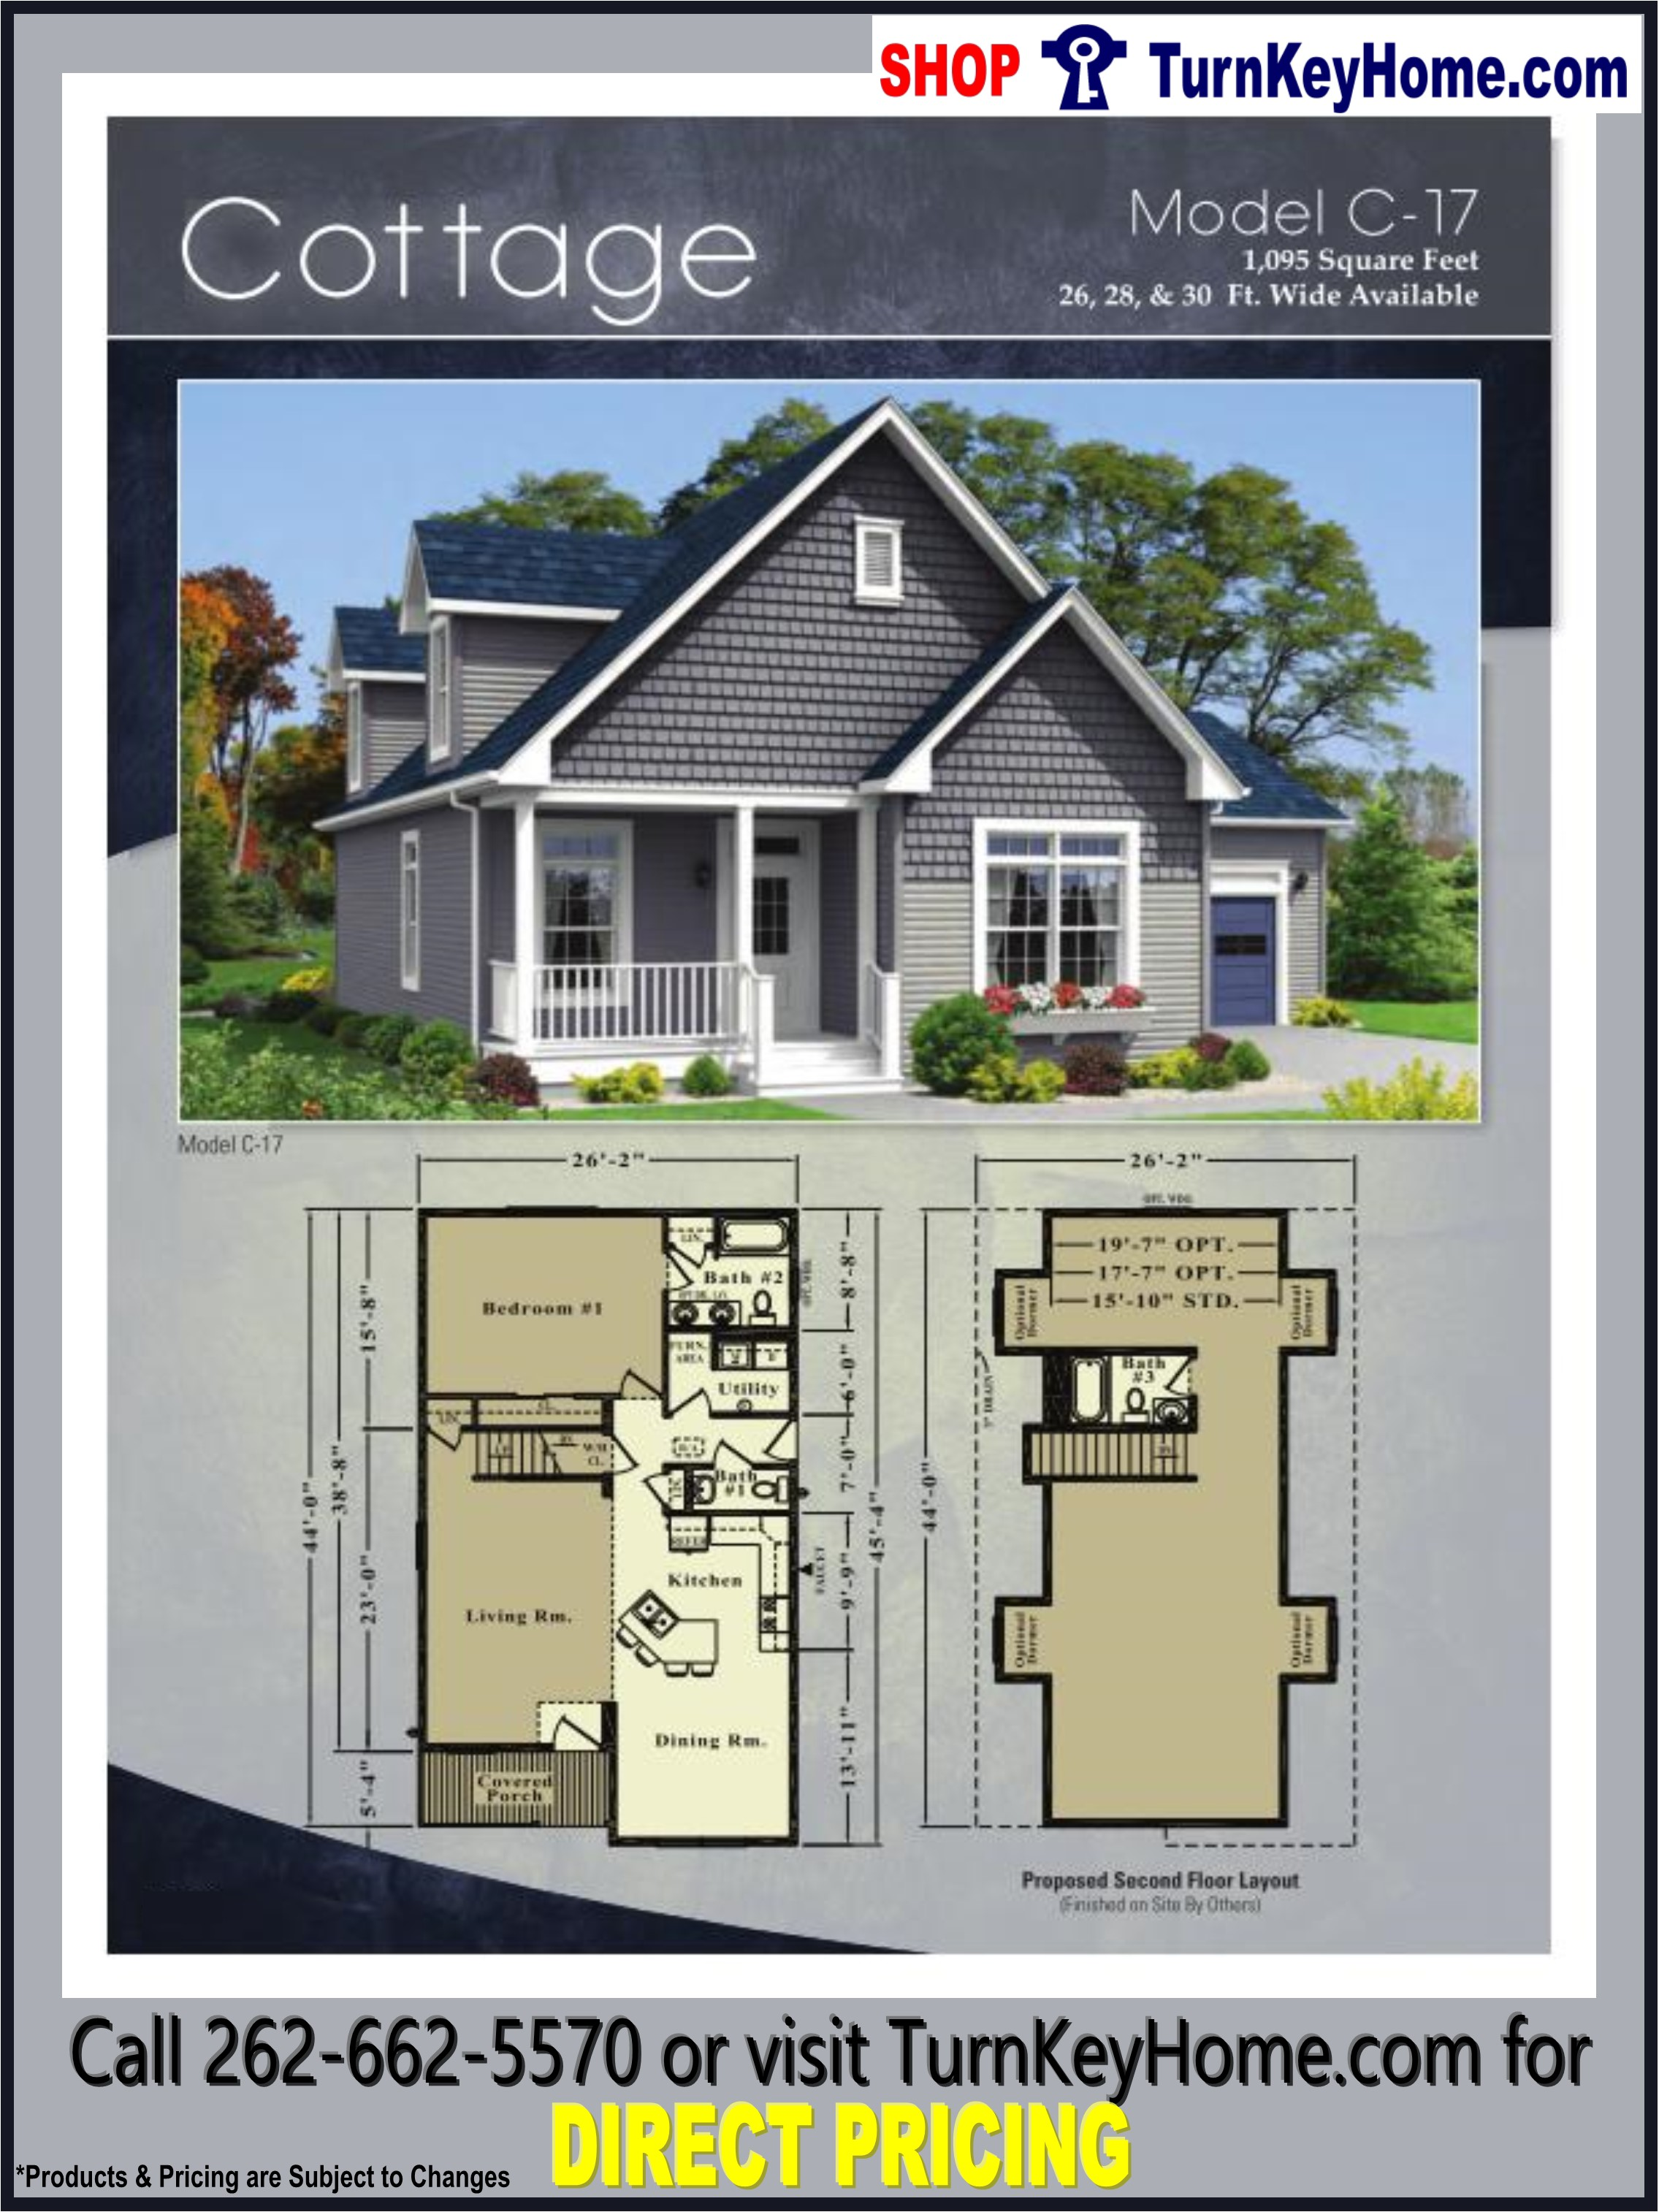 COTTAGE Cape Cod Style Home 1 Bed 1.5 Bath Plan 1095 SF ... on 2 bedroom mobile home plans, single mobile home plans, 4 bedroom mobile home plans, 5 bedroom mobile home plans, 1 bedroom mobile home plans,